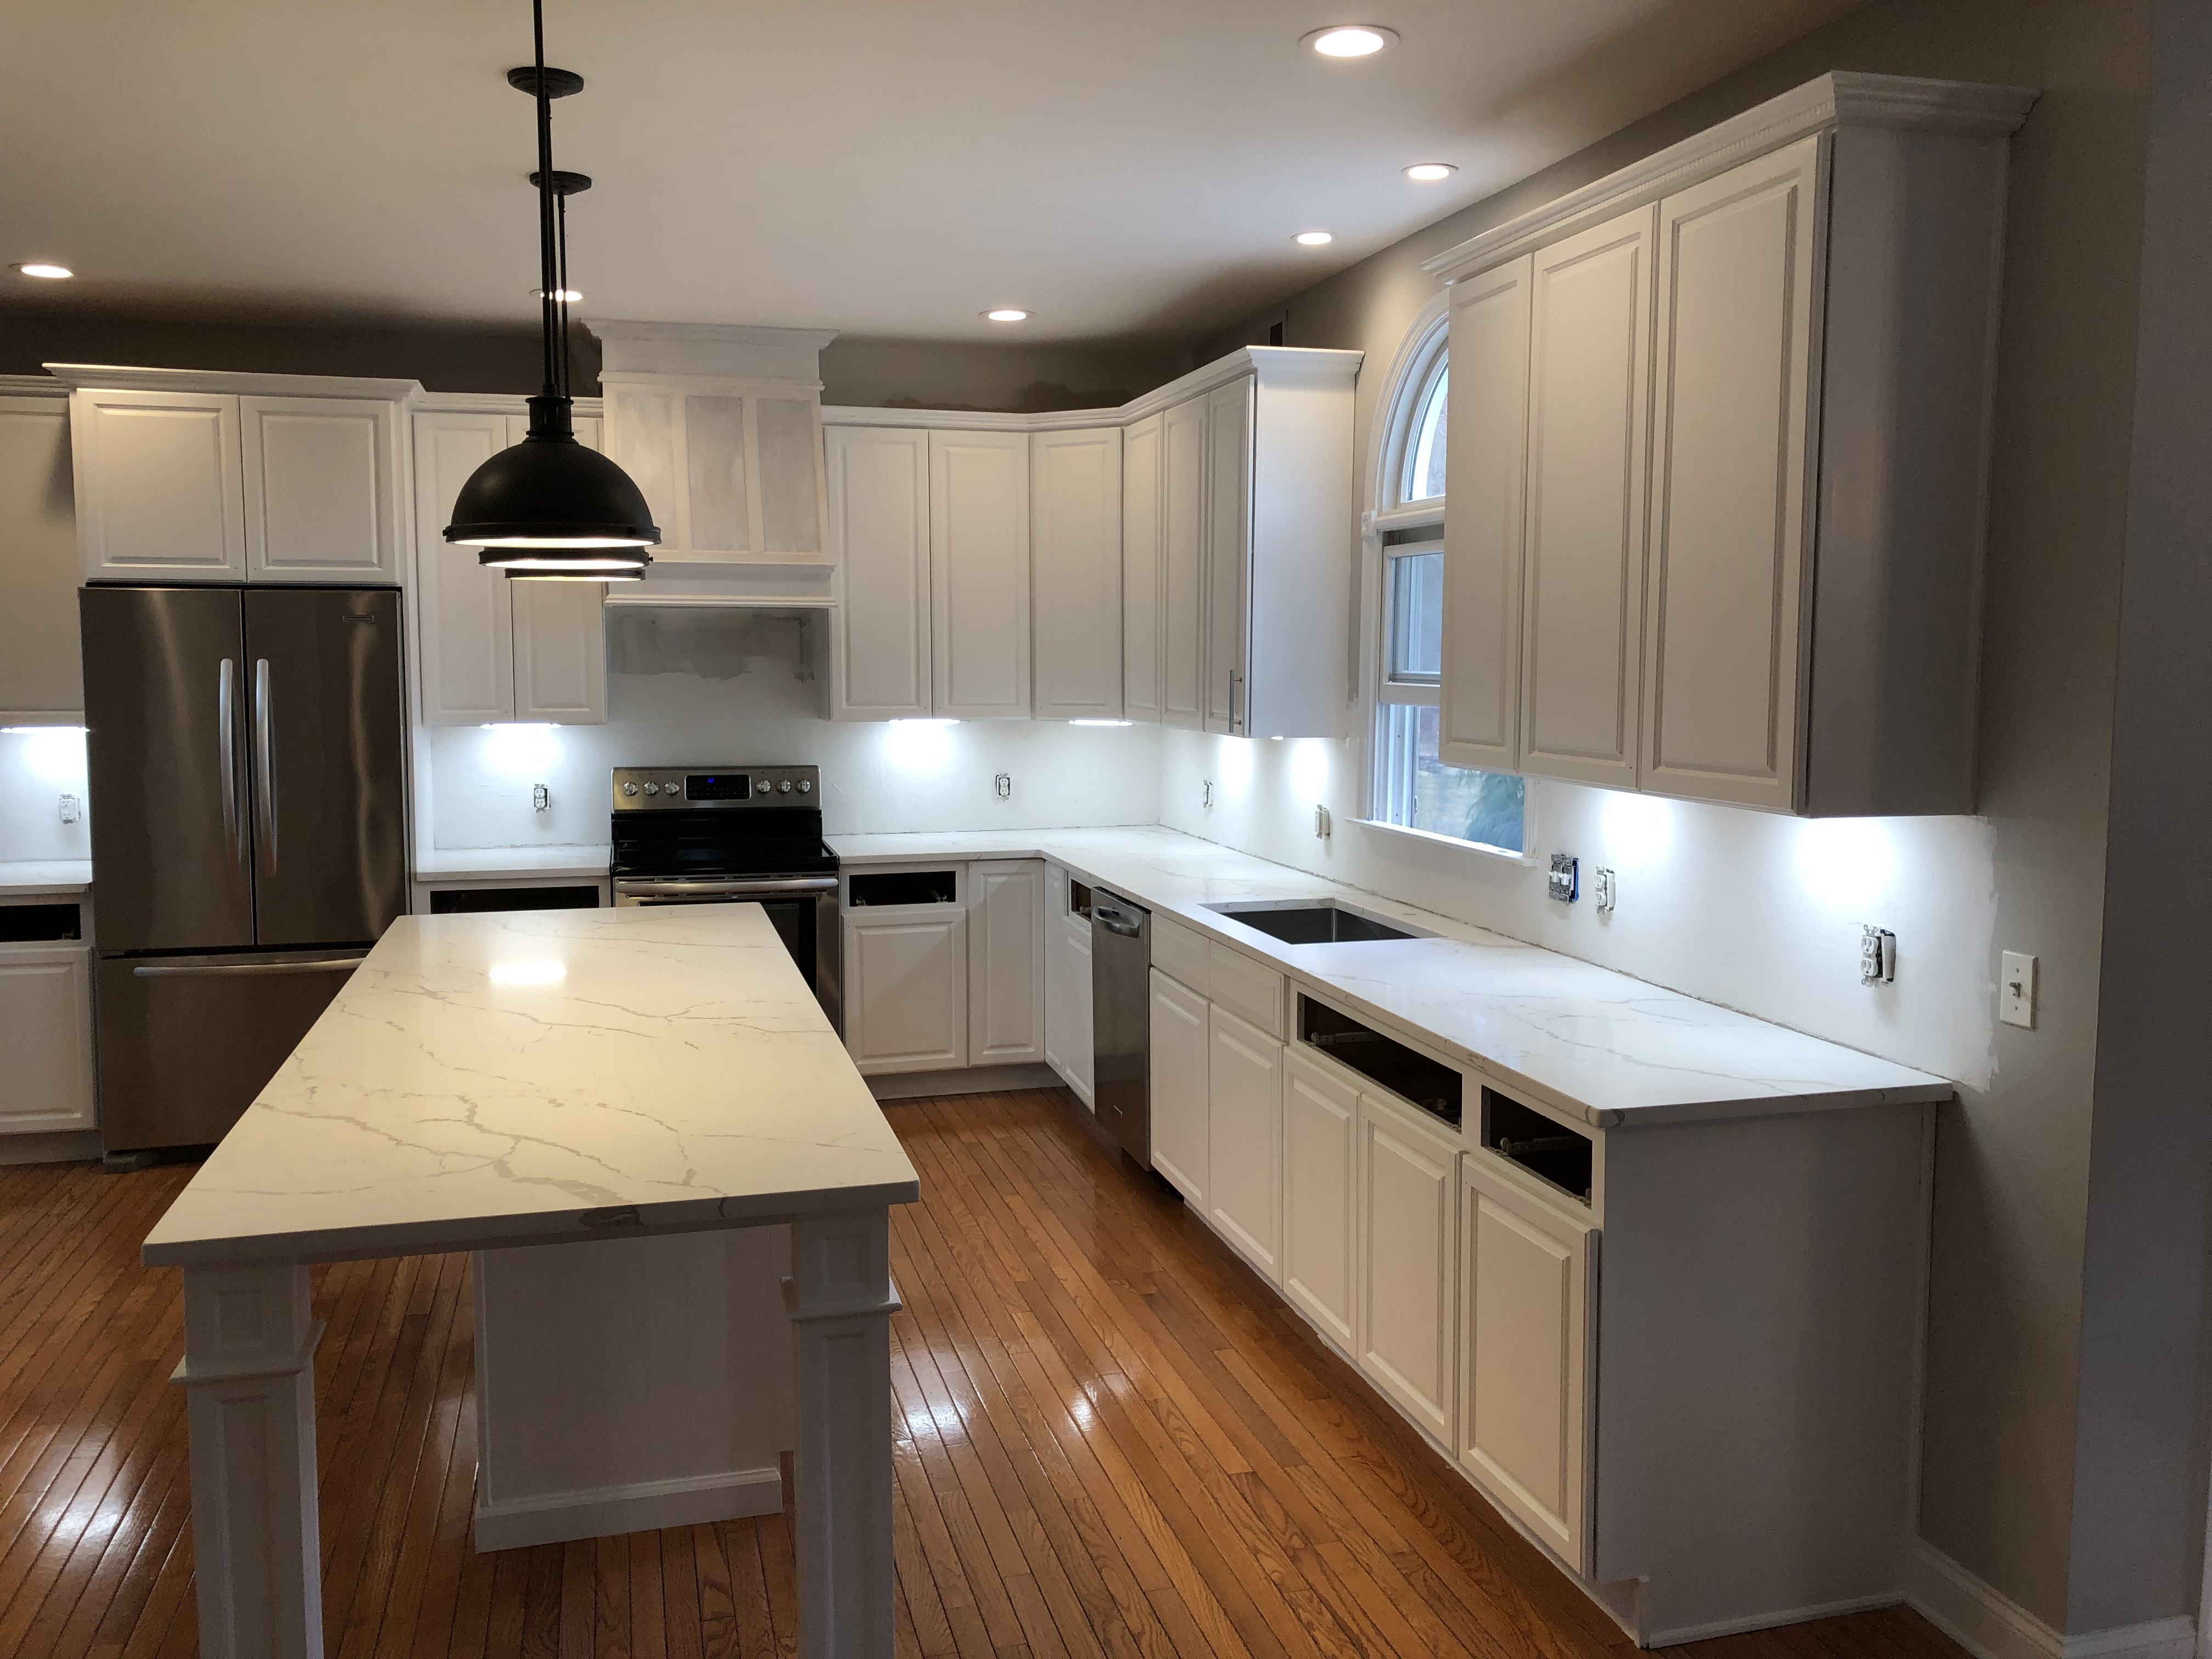 Marble Countertops Kitchen Counter Visualizer Bloomsbury Nj